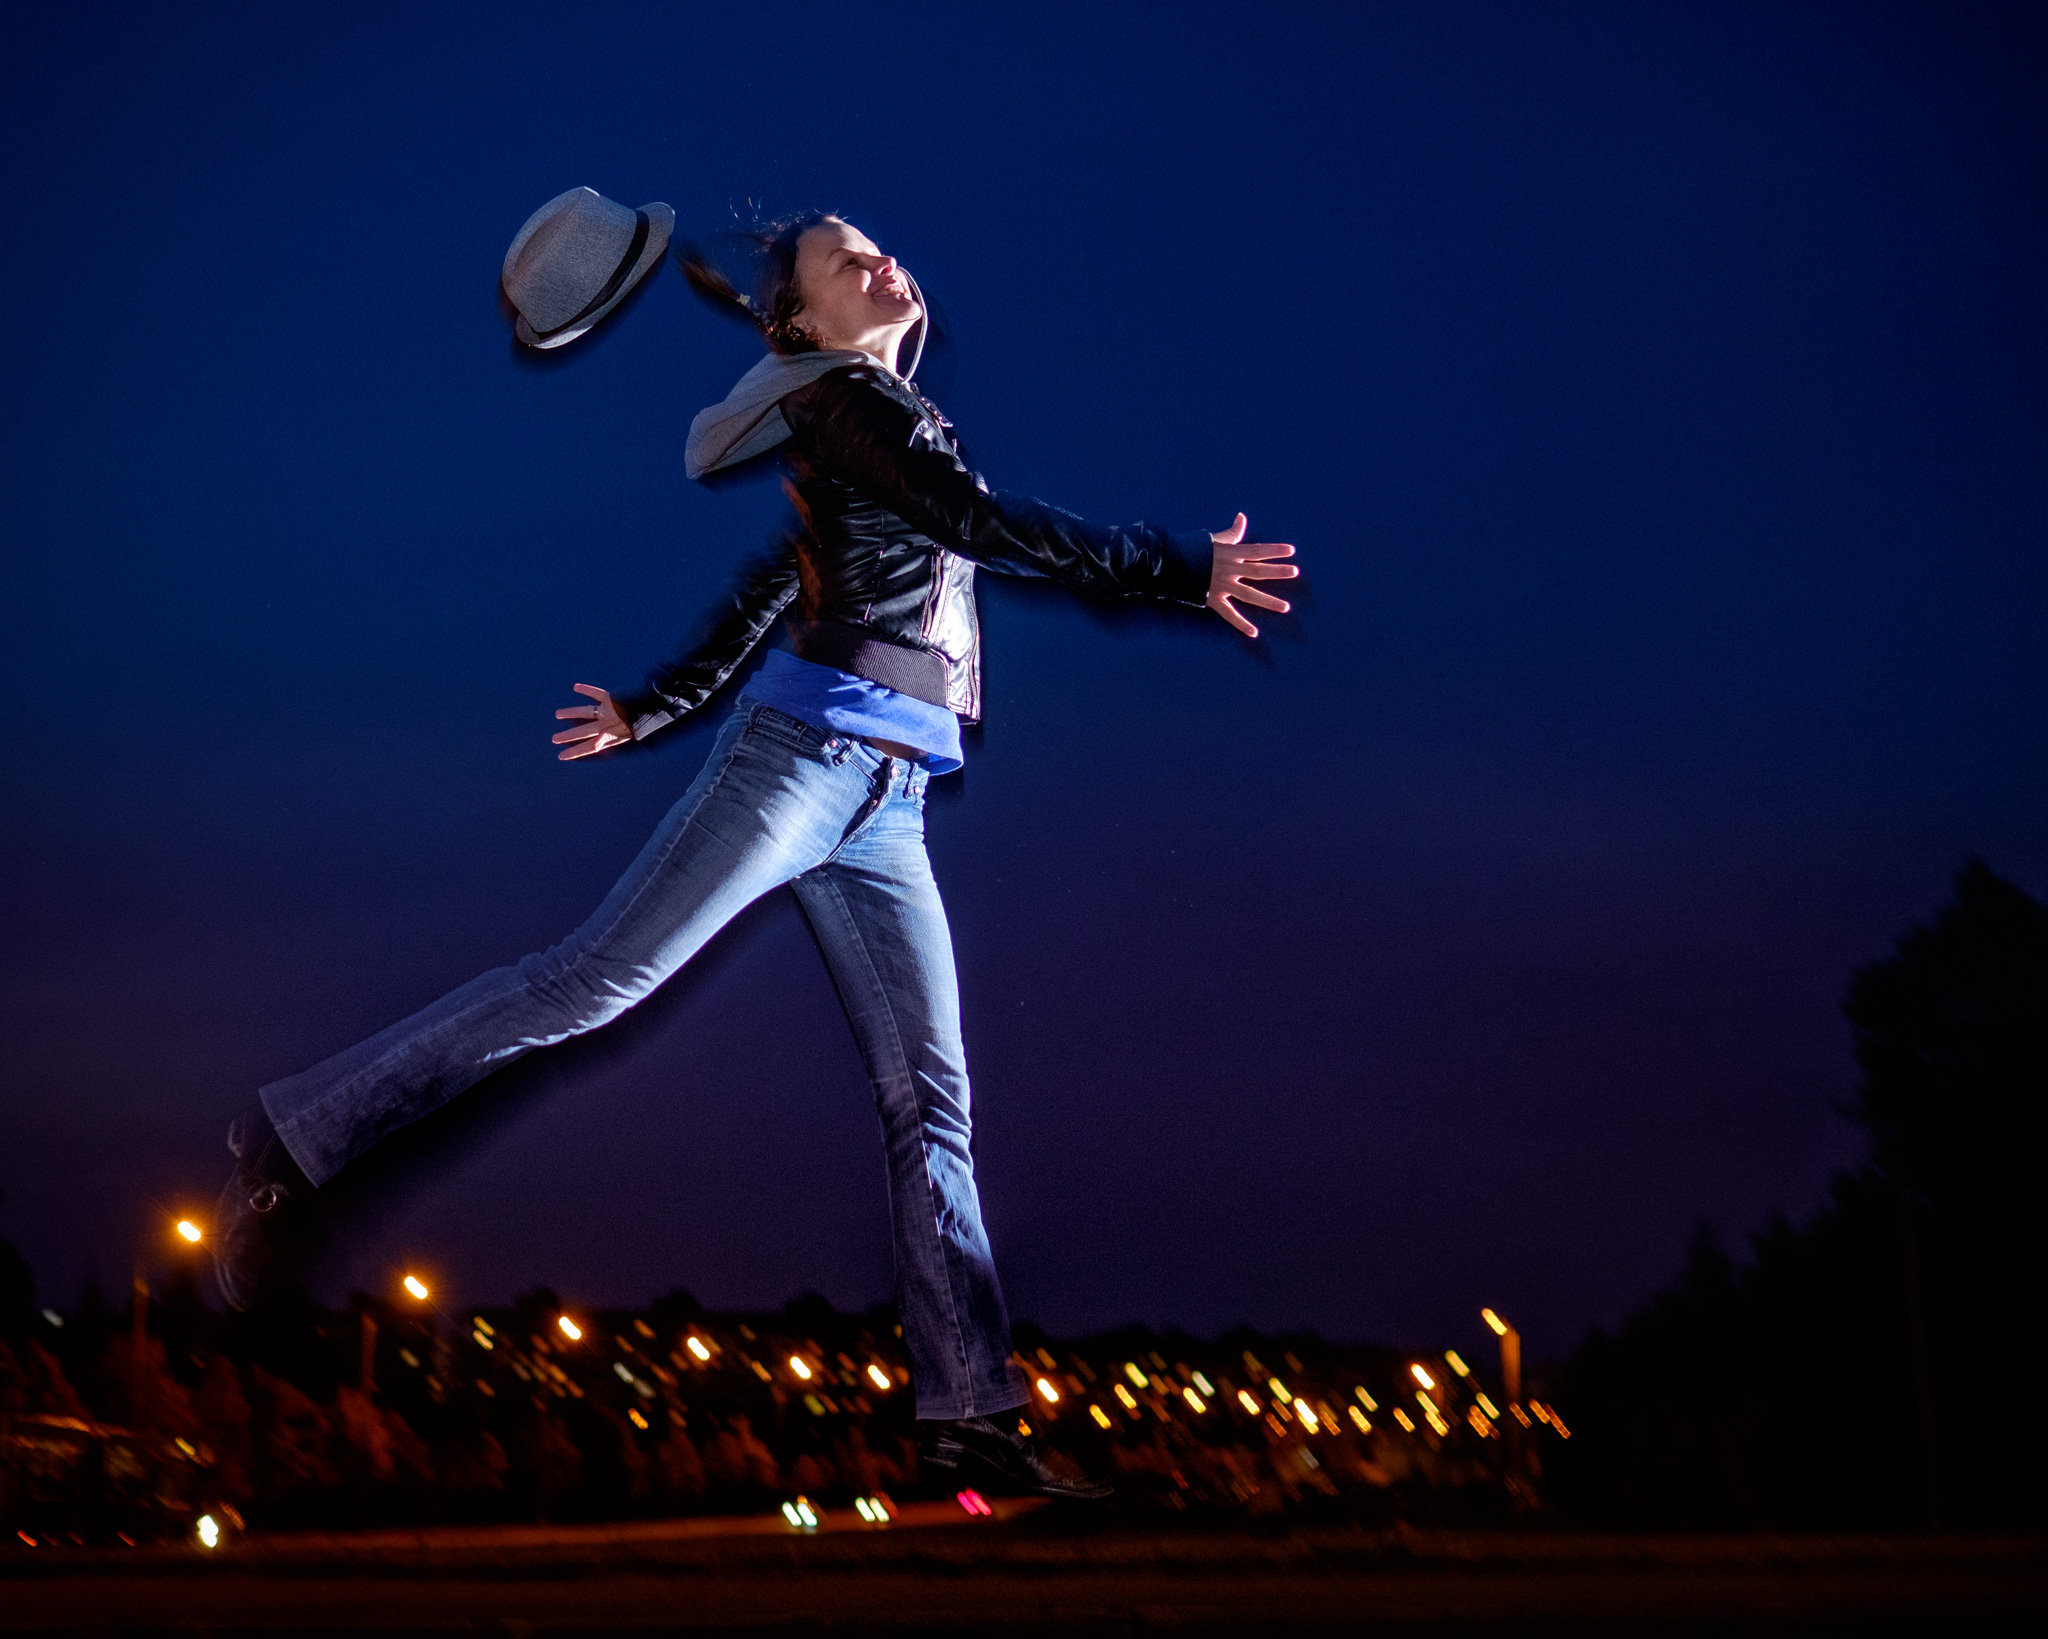 Nighttime portrait with flying hat